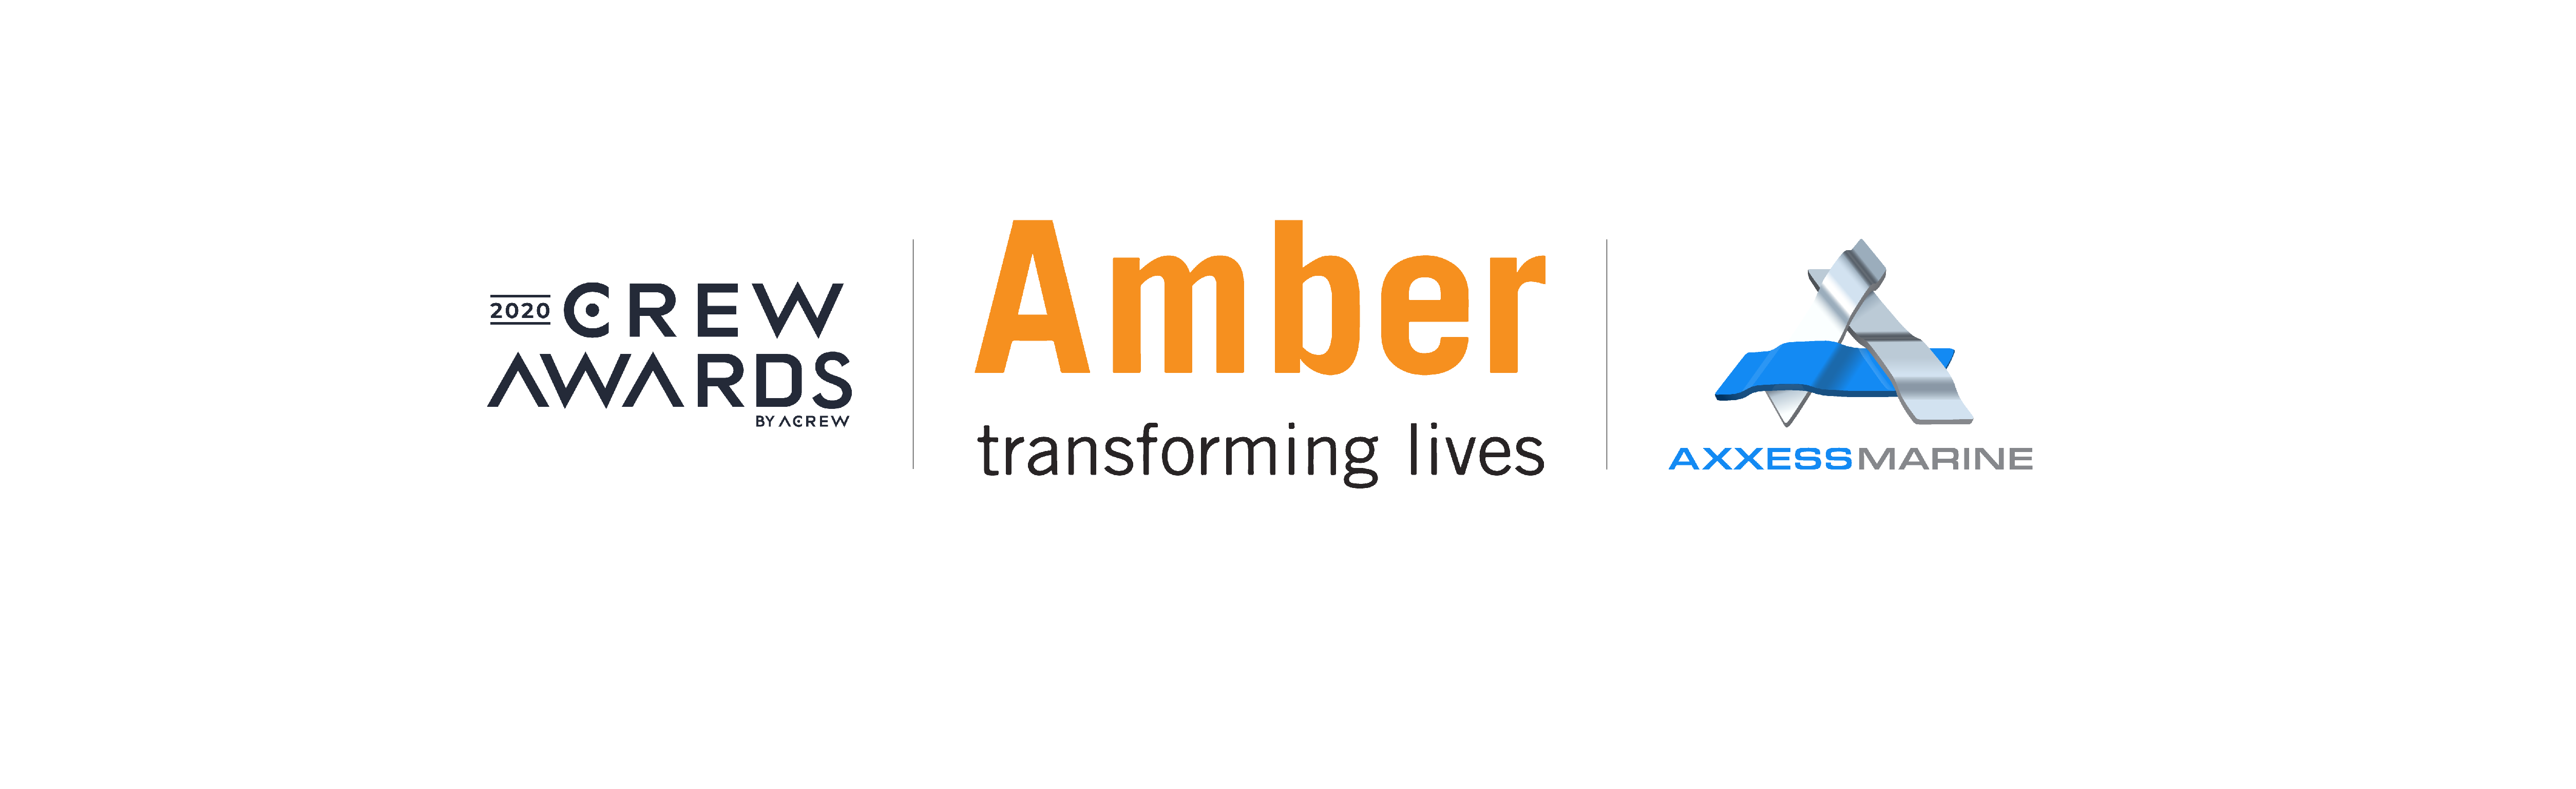 Support to Move on – Crew Awards and Axxess Marine Raising Funds for Amber